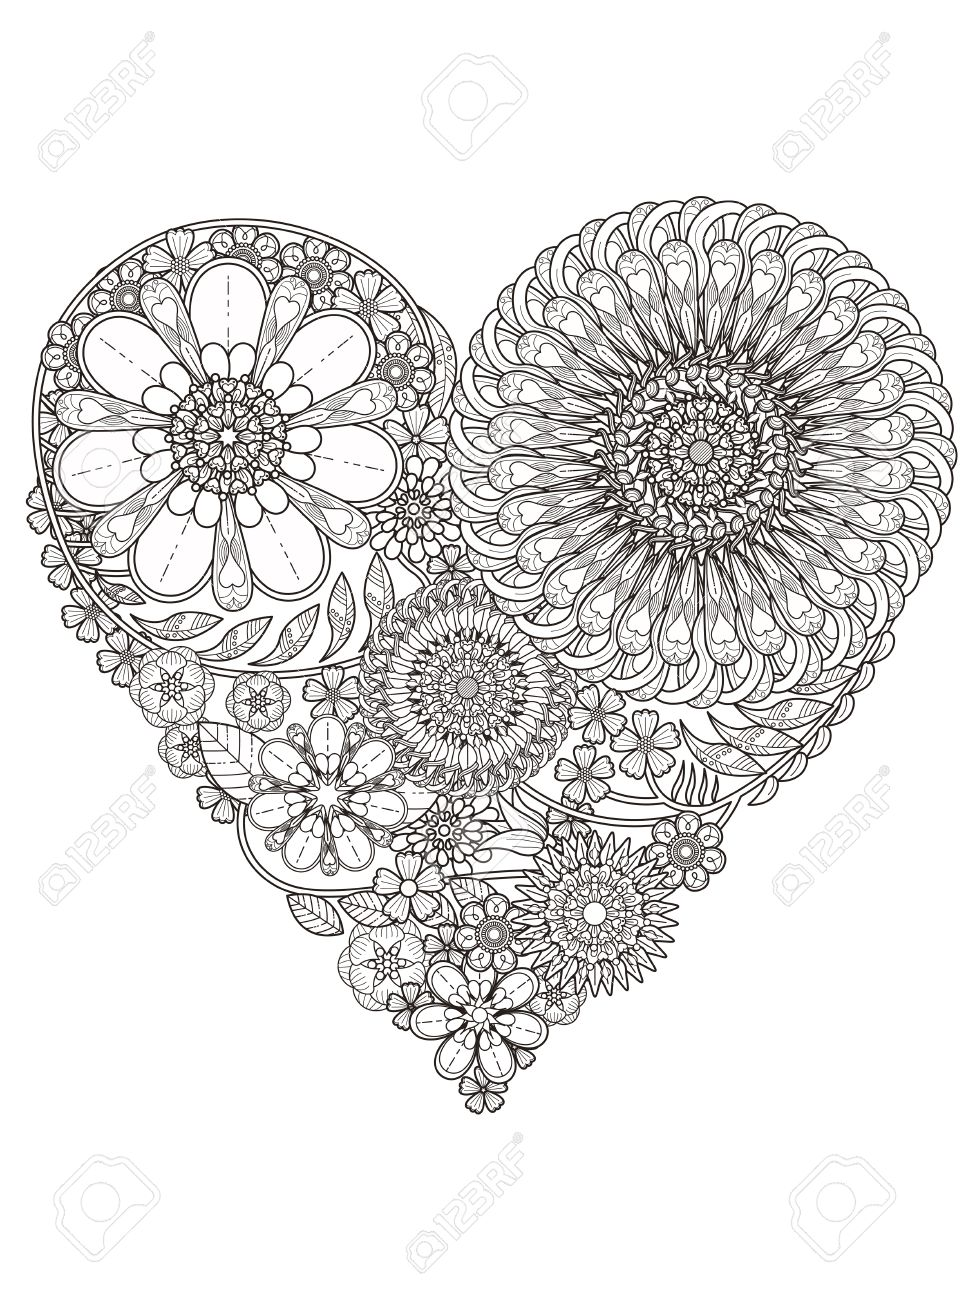 Creative Floral Coloring Page In Heart Shape Royalty Free Cliparts ...